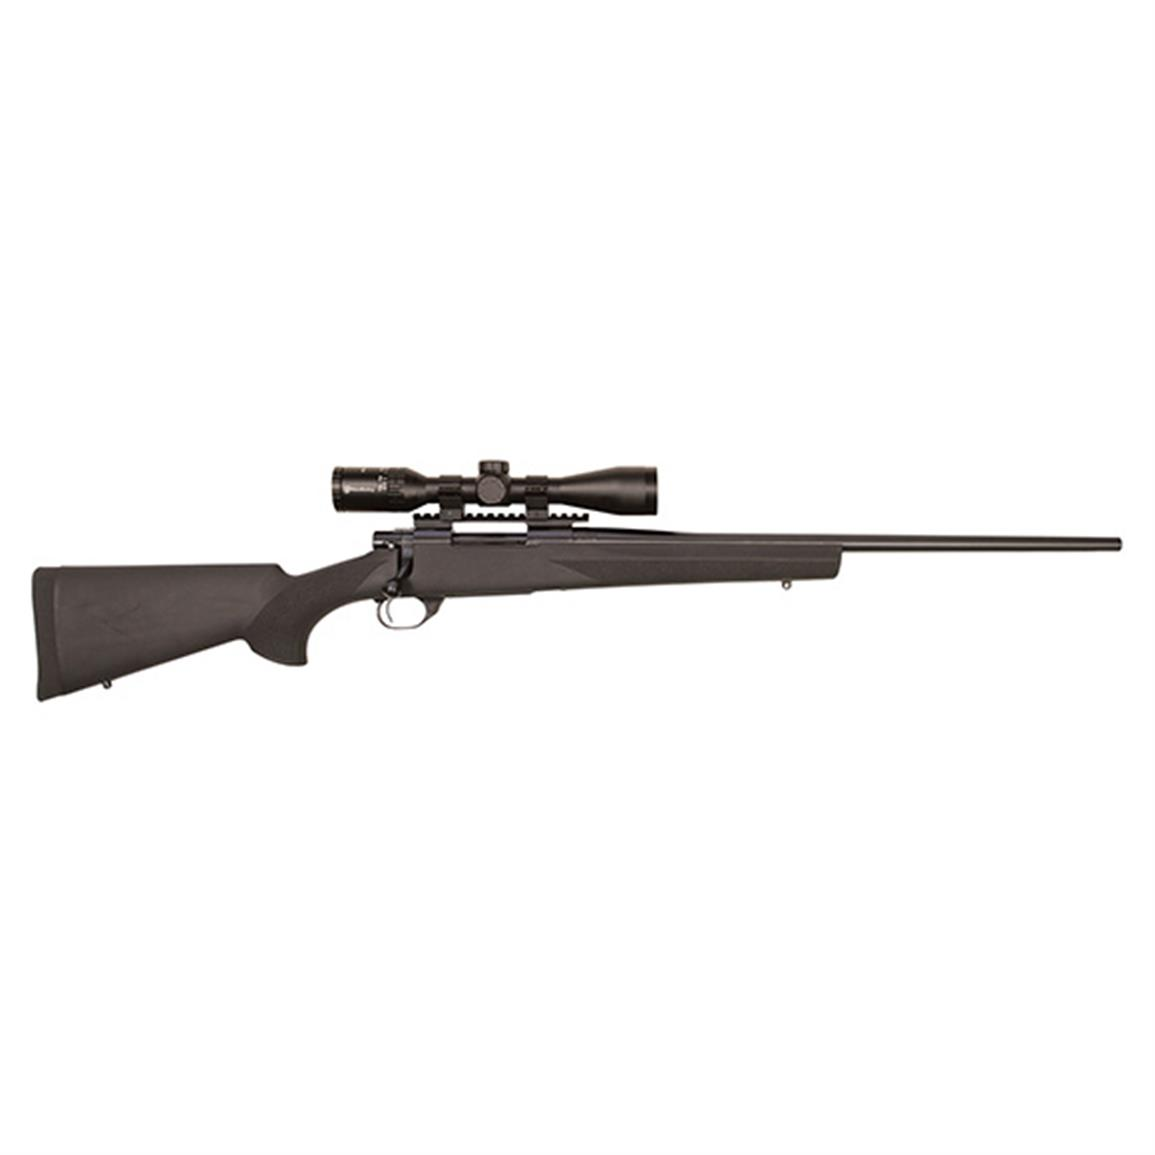 LSI Howa Fieldking, Bolt Action, .30-06 Springfield, with Panamax 3-9x40mm Scope, 5 Rounds